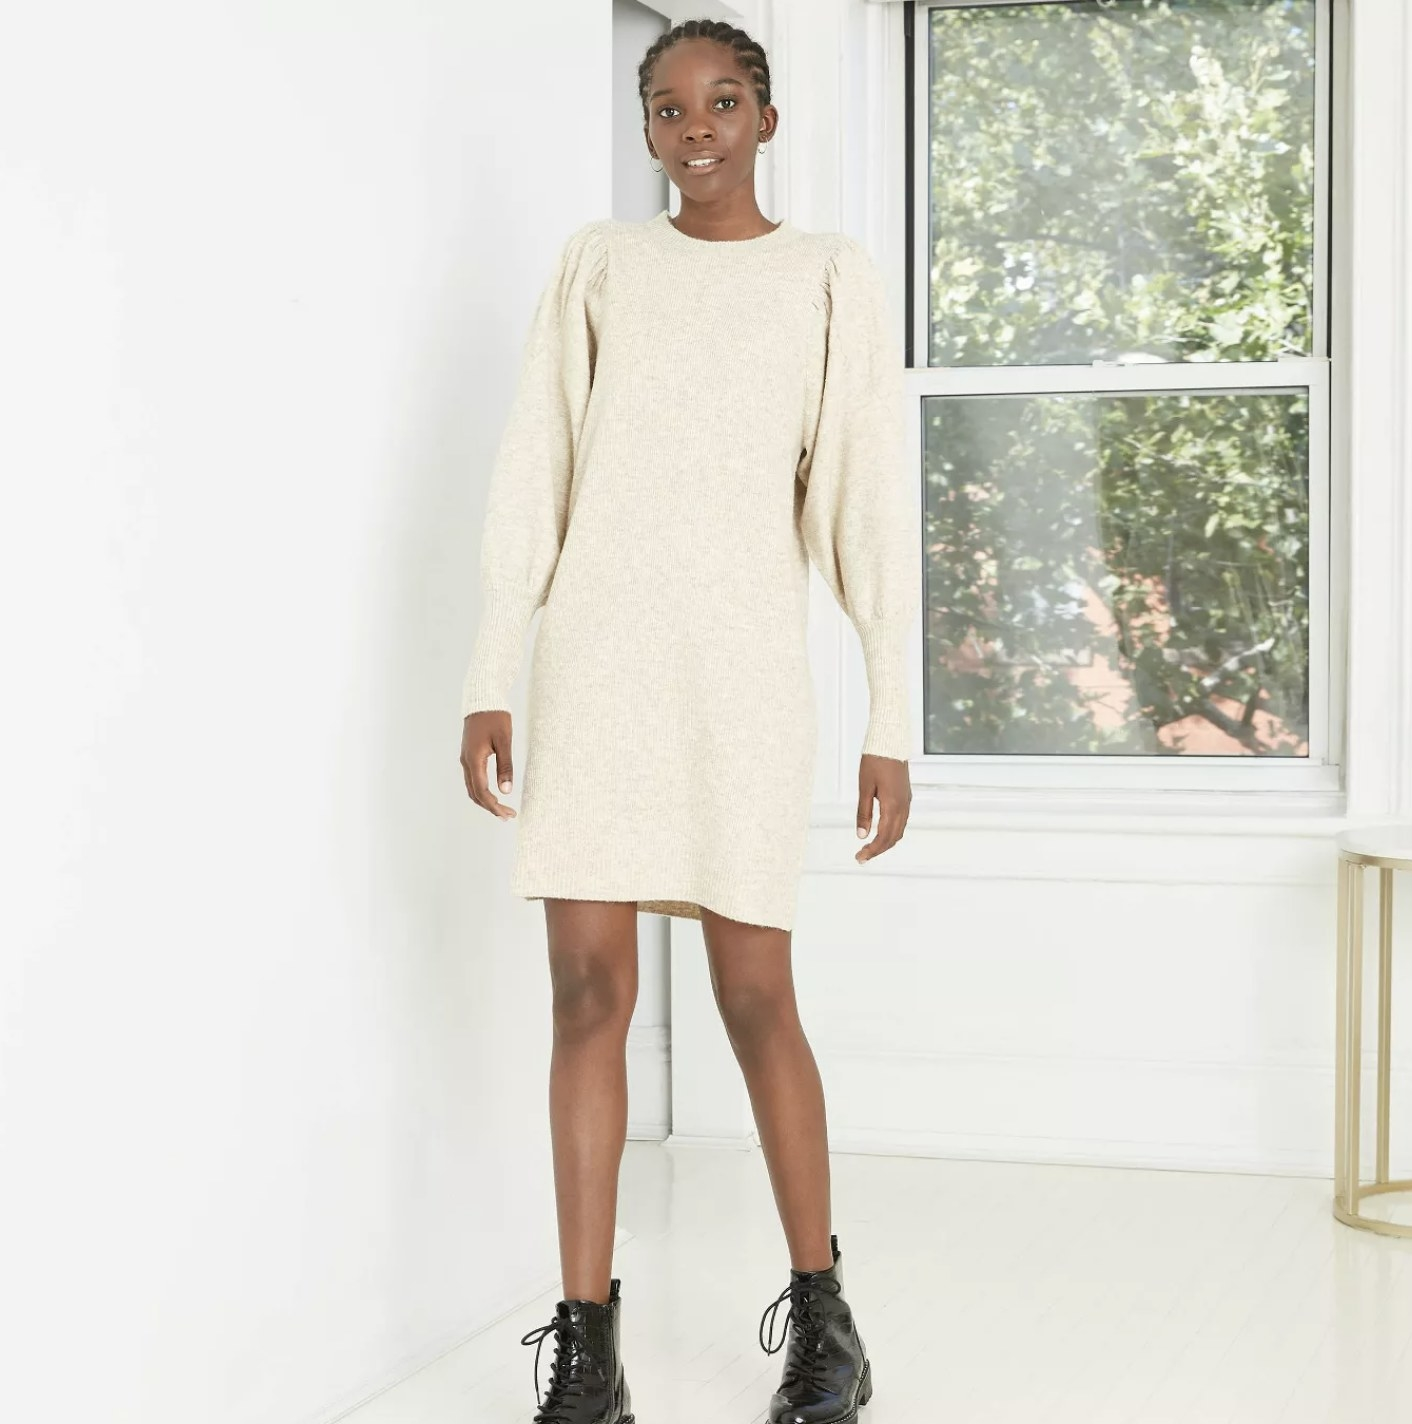 Model is wearing a cream sweater dress with puffed long sleeves